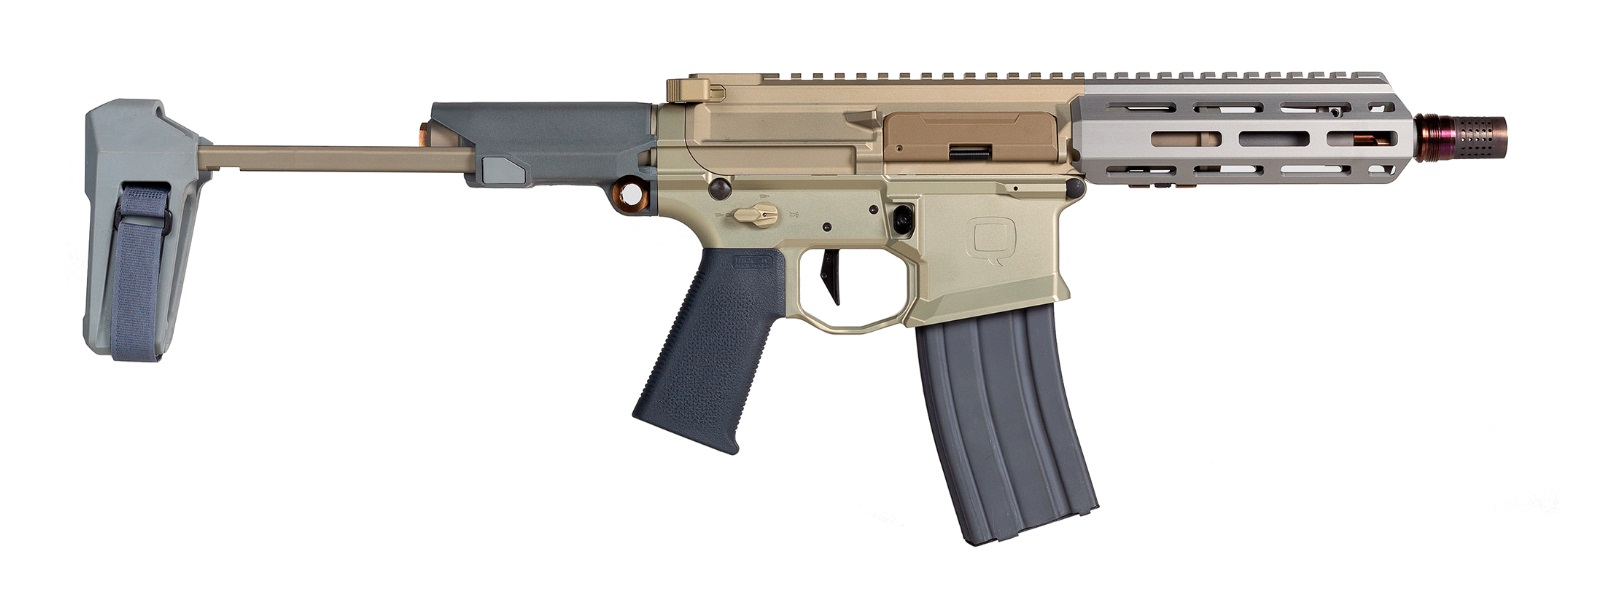 Q HONEY BADGER PISTOL 300 AAC BLACKOUT